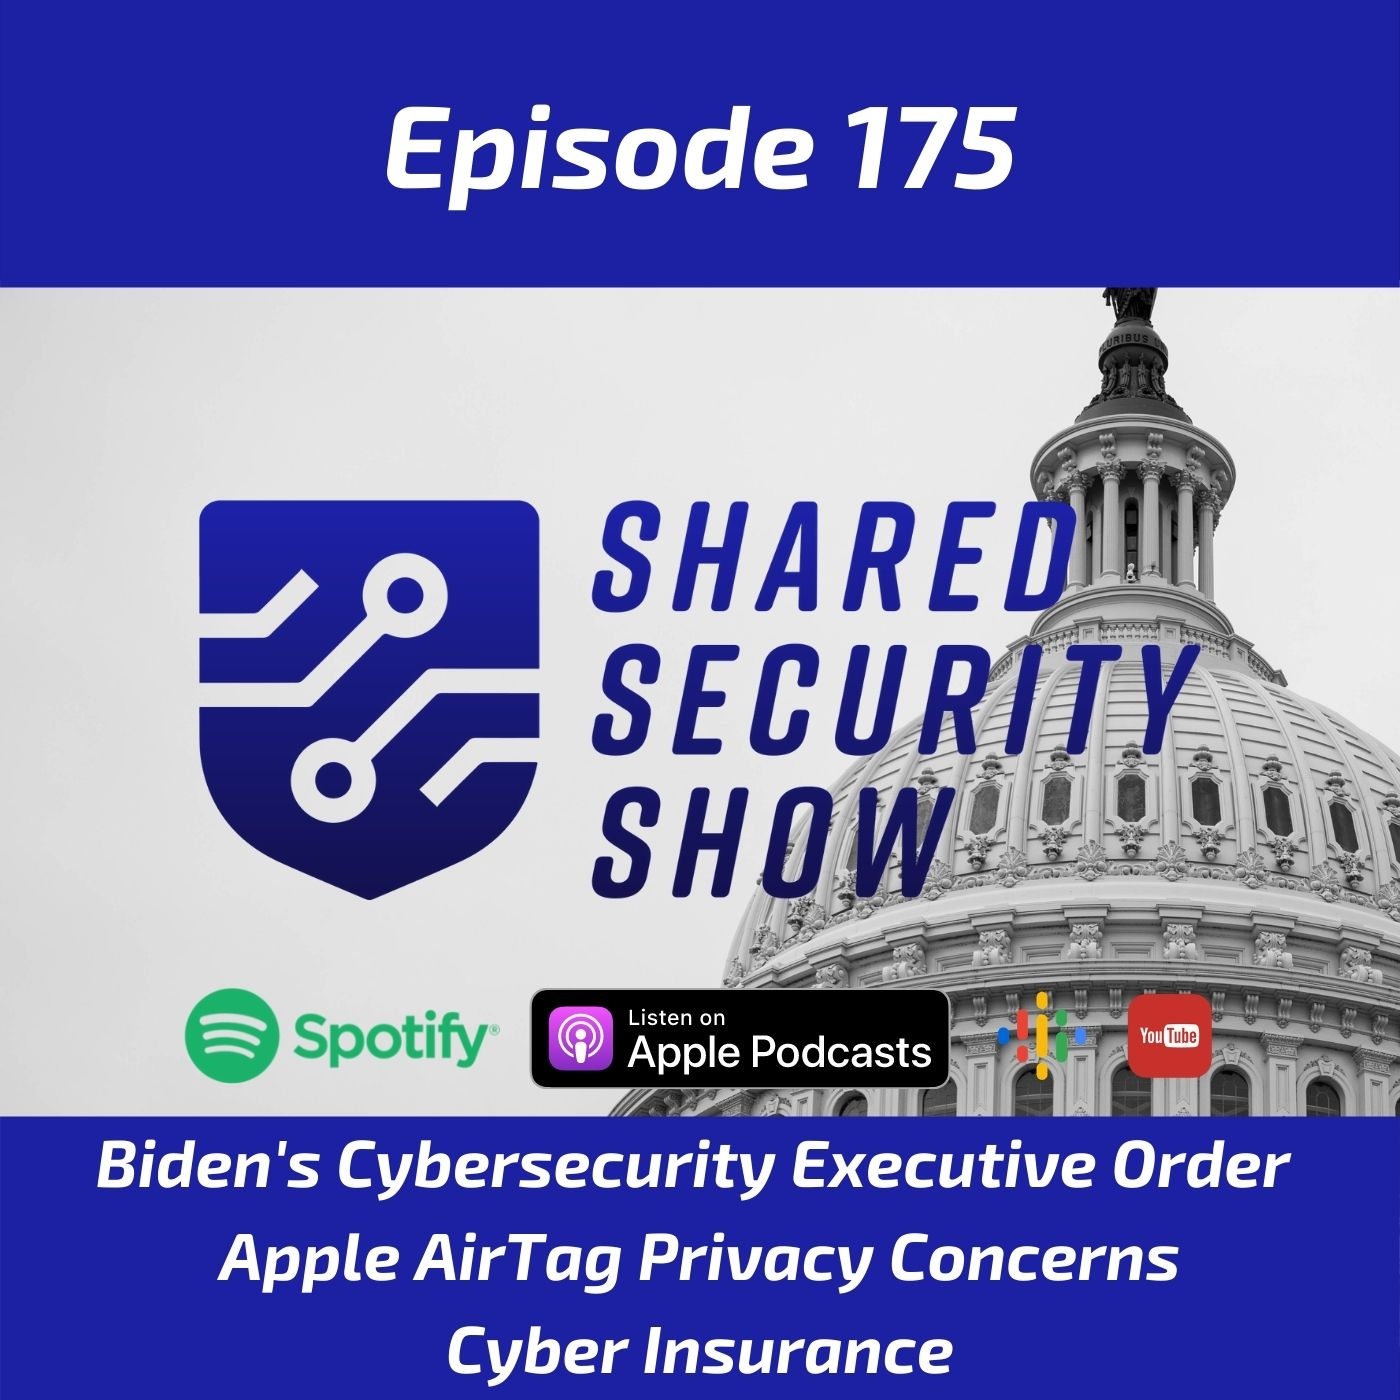 Biden's Cybersecurity Executive Order, Apple's AirTag, Cyber Insurance